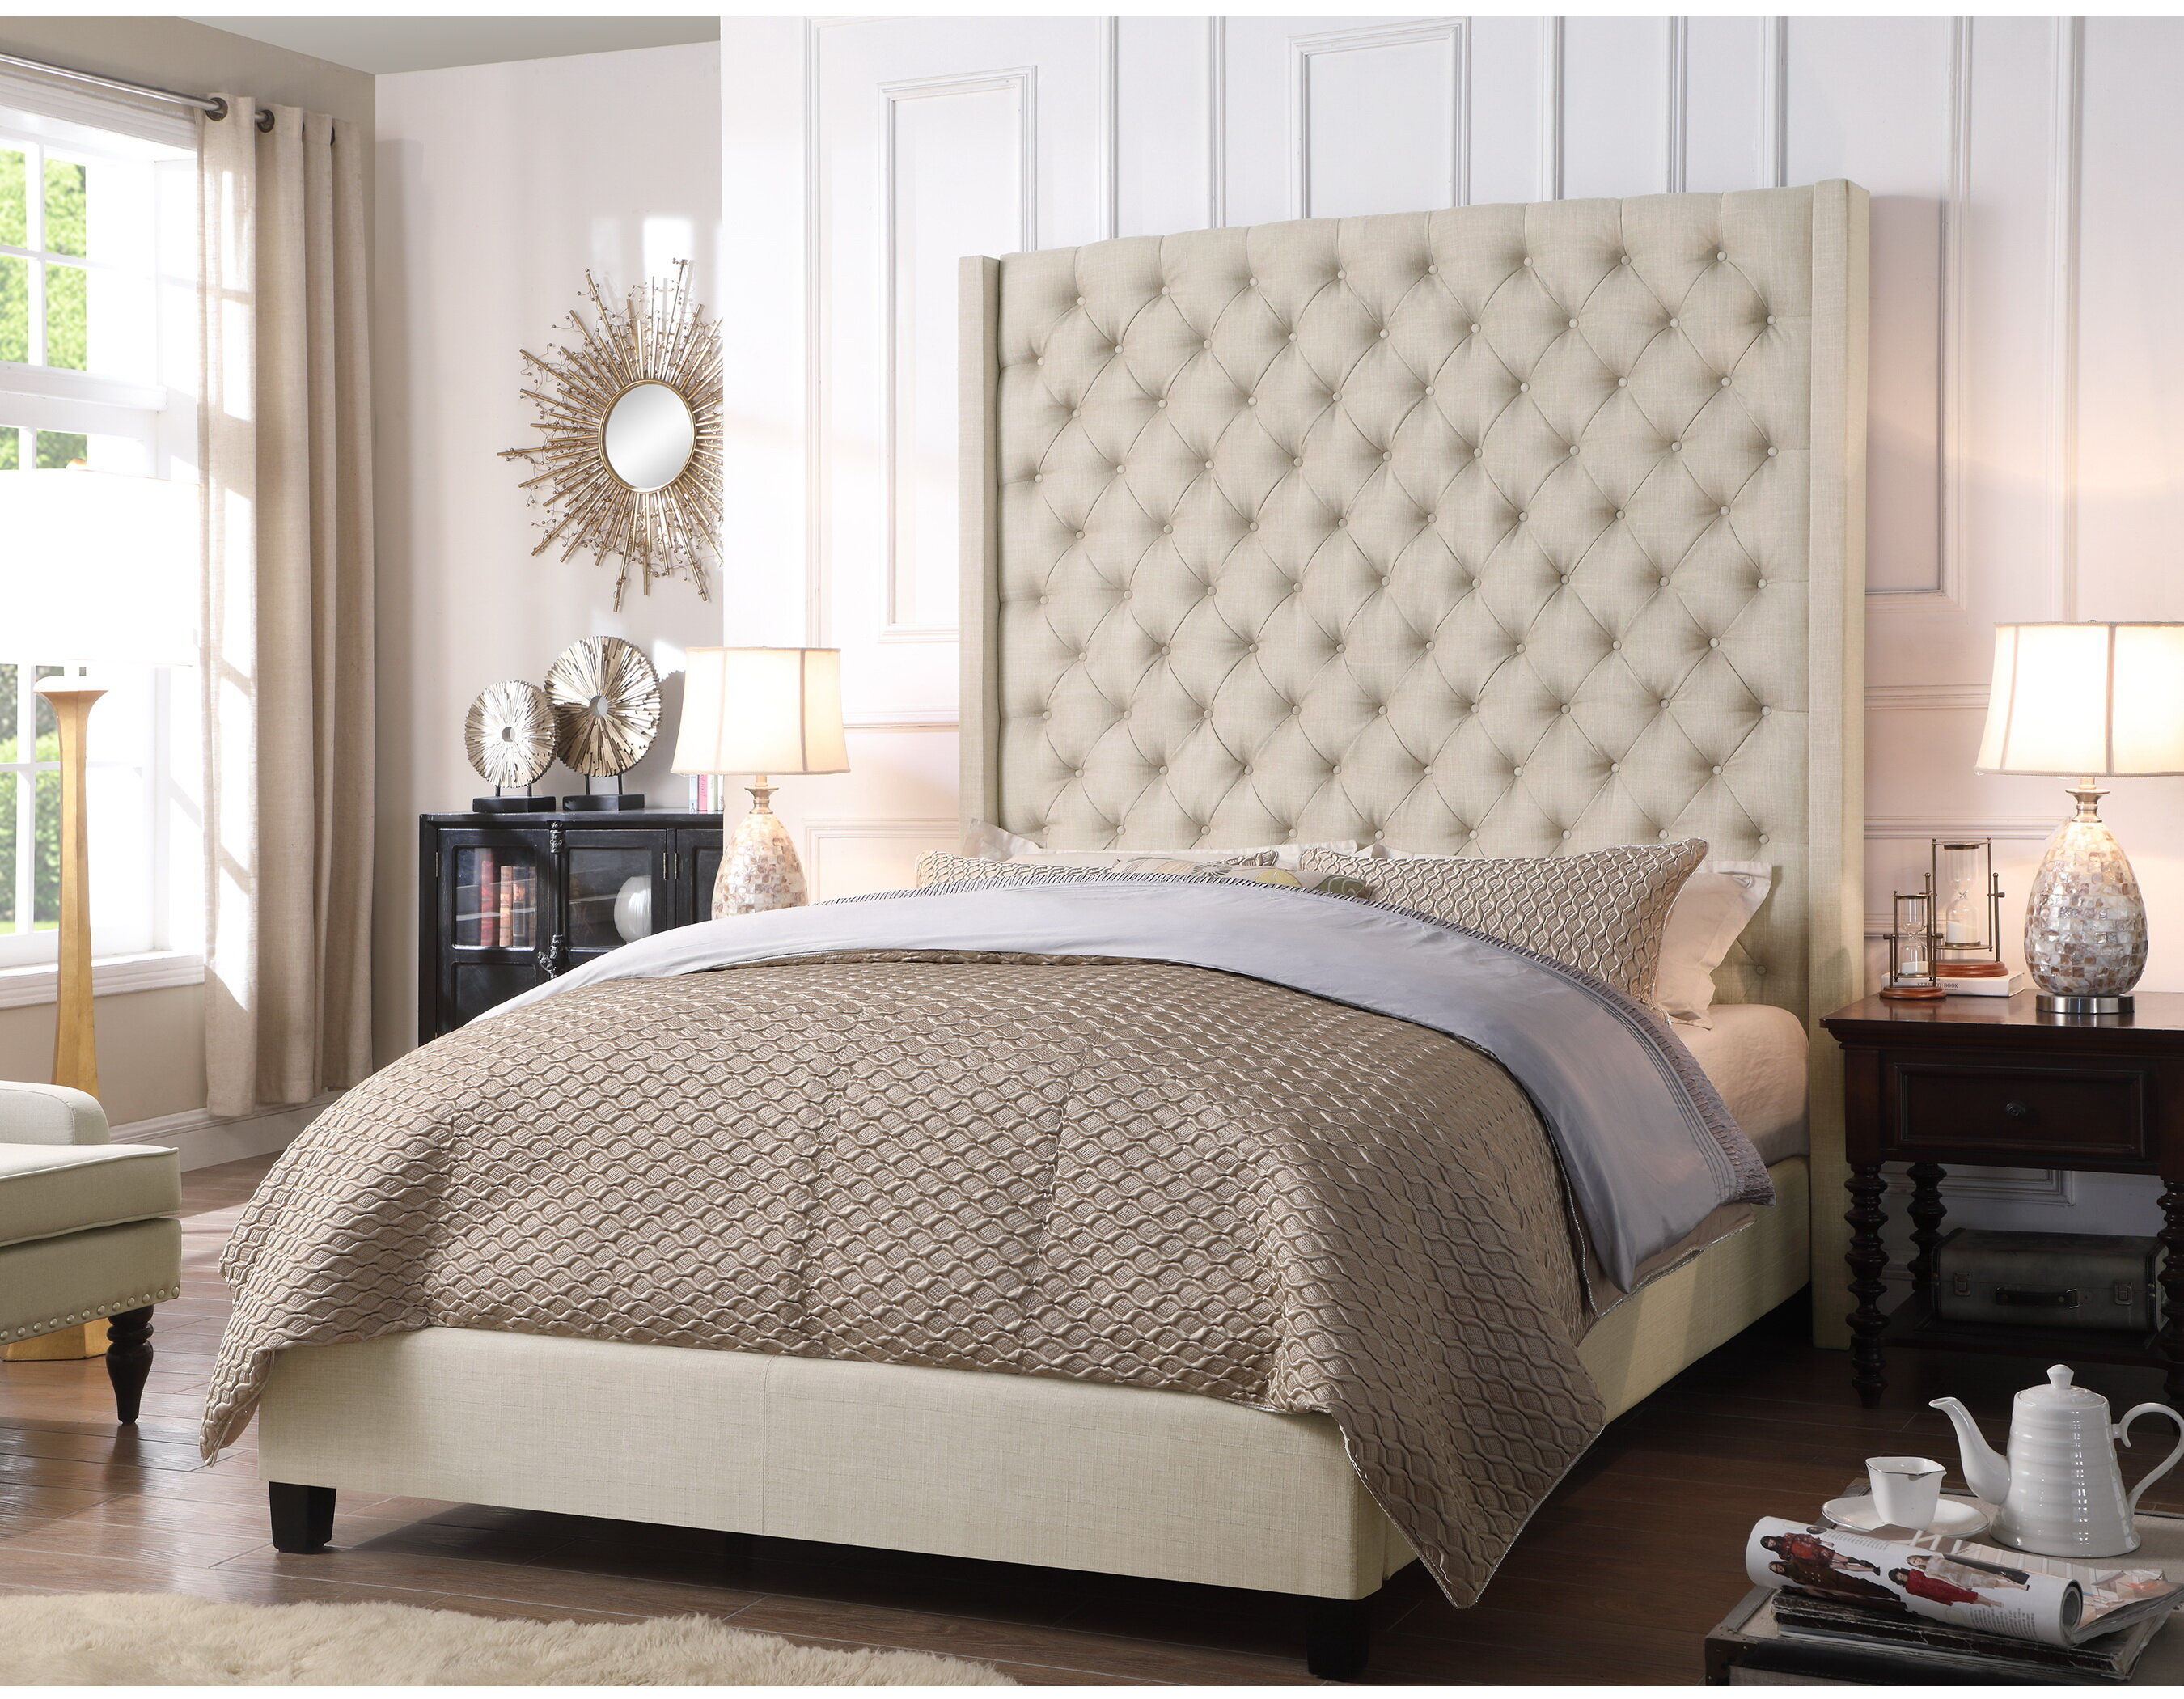 Instant Home Antonio Wingback Tufted High Headboard Upholstered Standard Bed Reviews Wayfair